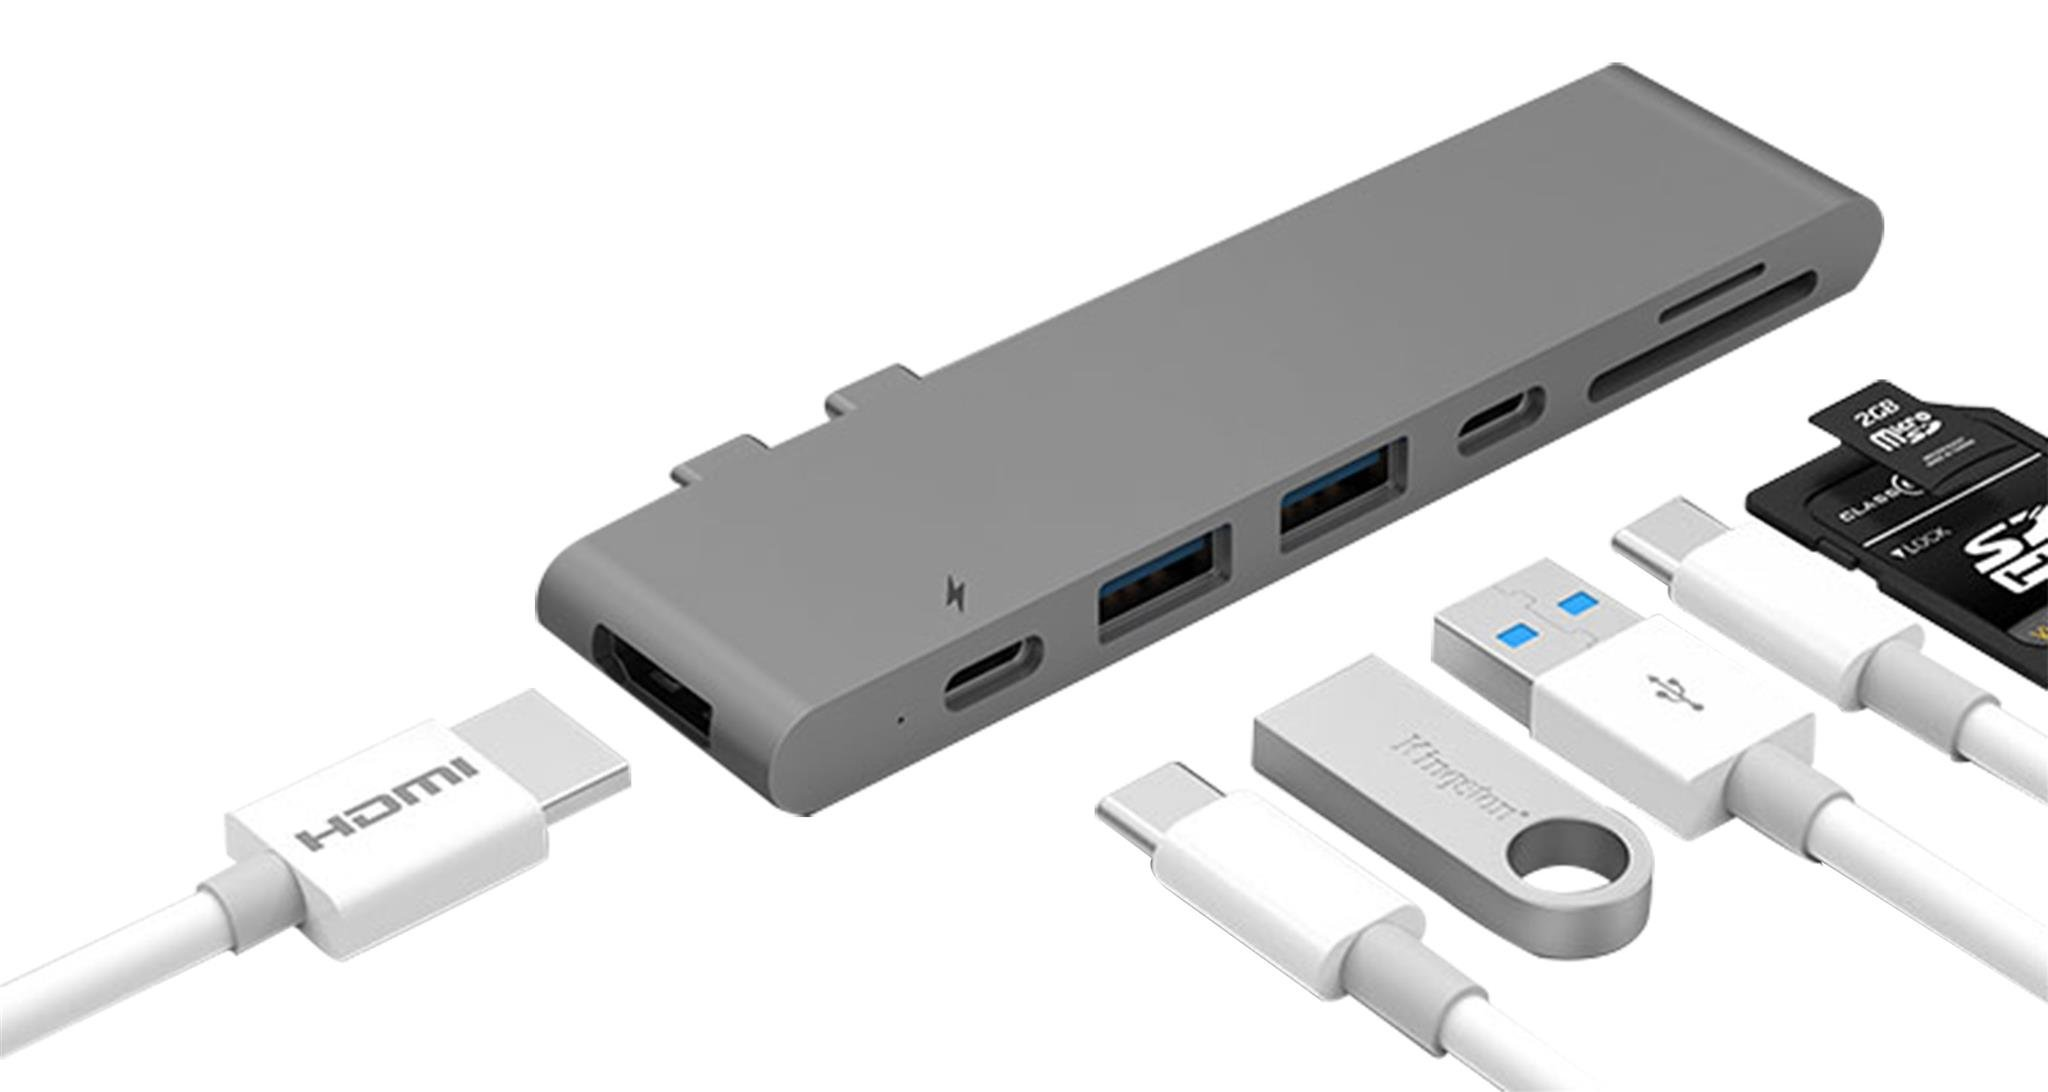 iUSBC Type-C Hub Multiport Adapter Thunderbolt 3 (40Gbs) 2 USB 3.0 USB-C (5Gbs) 4K HDMI, SD/Micro Card Reader Ports, Pass Through Charging for MacBook Pro 2016/2017 13 Inch and 15 Inch, Space Gray